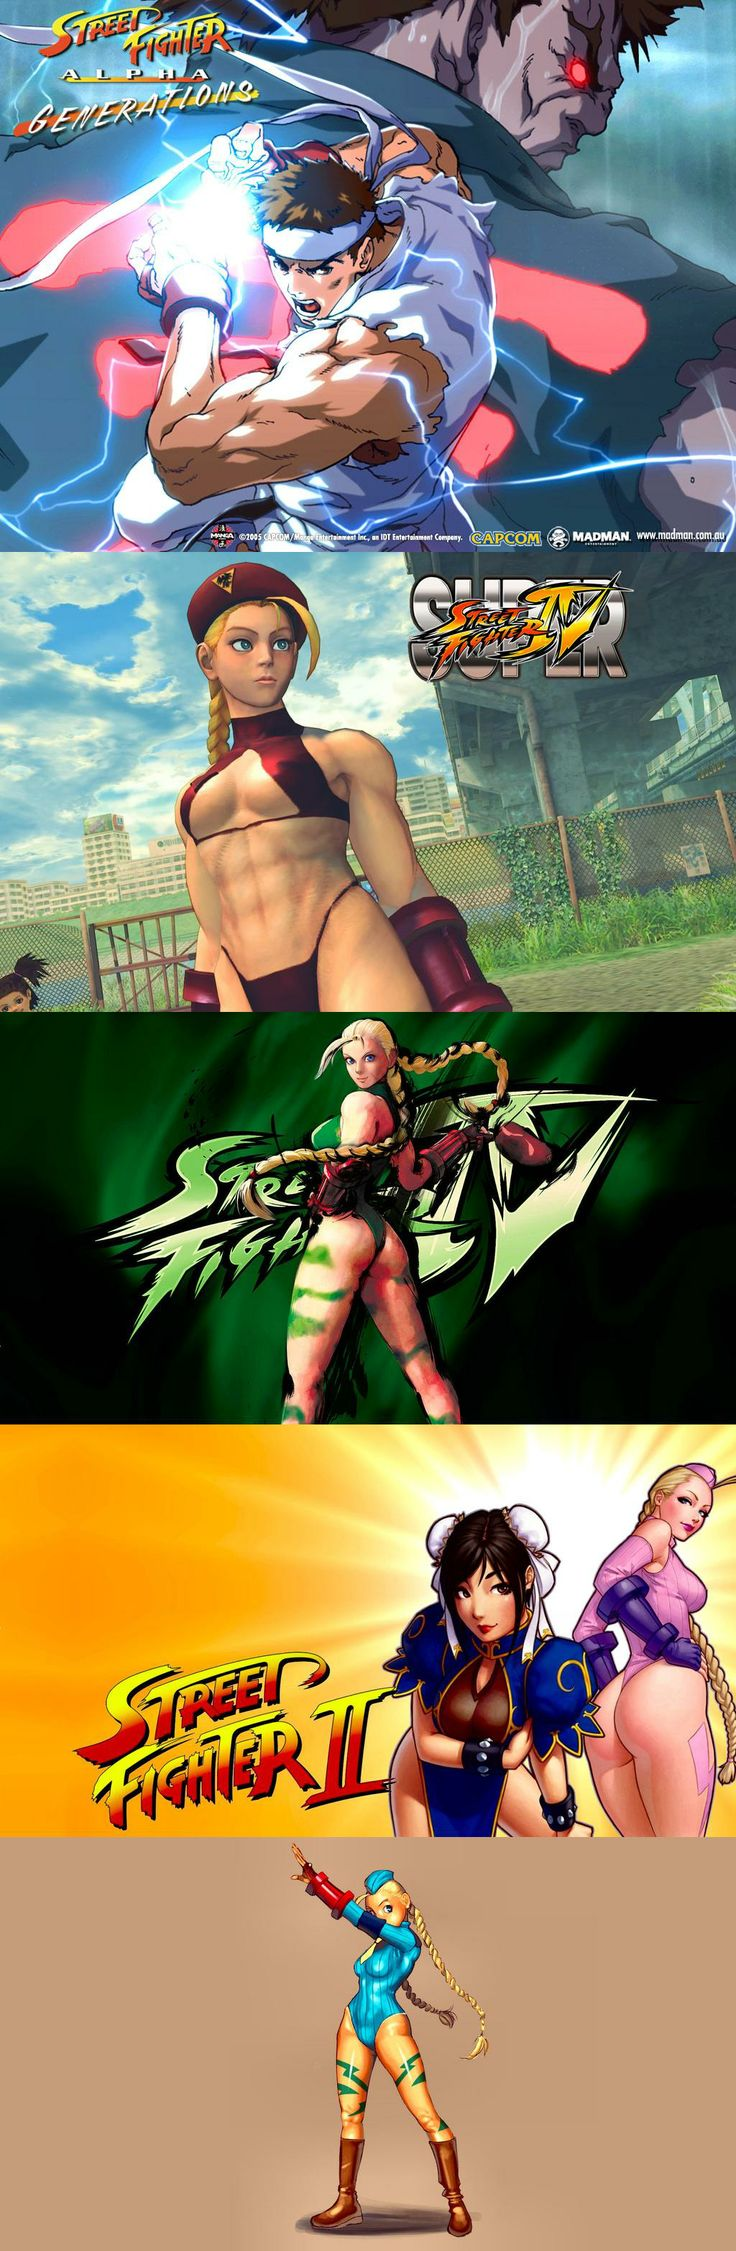 Cammy: Street fighter alpha 3 outfit